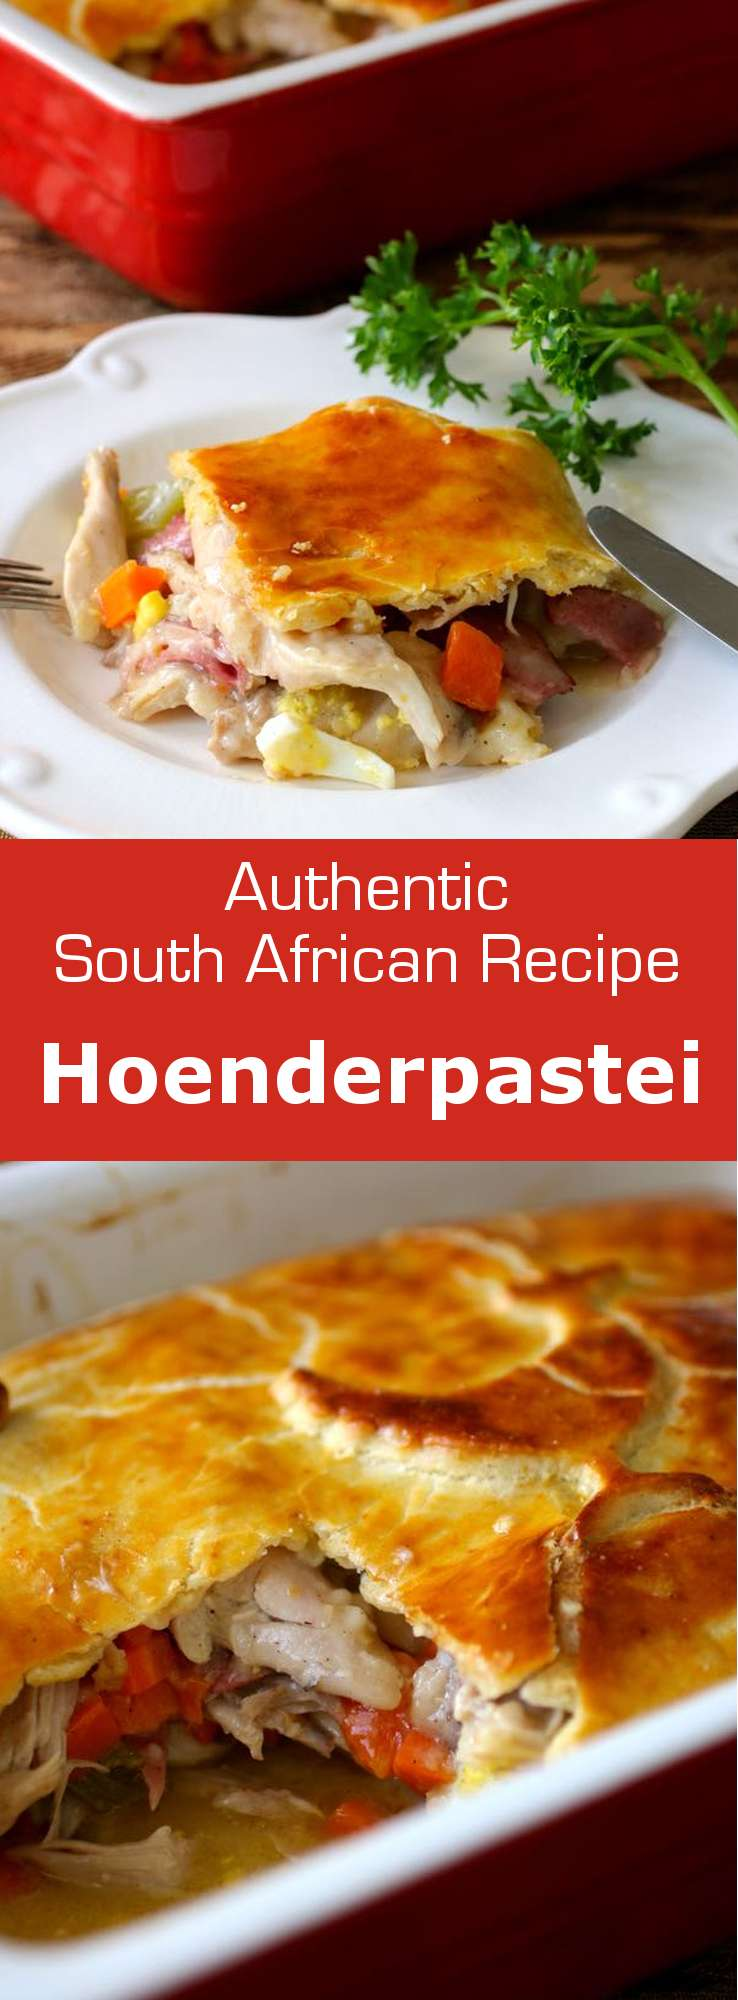 Hoenderpastei South African Recipe 196 Flavors